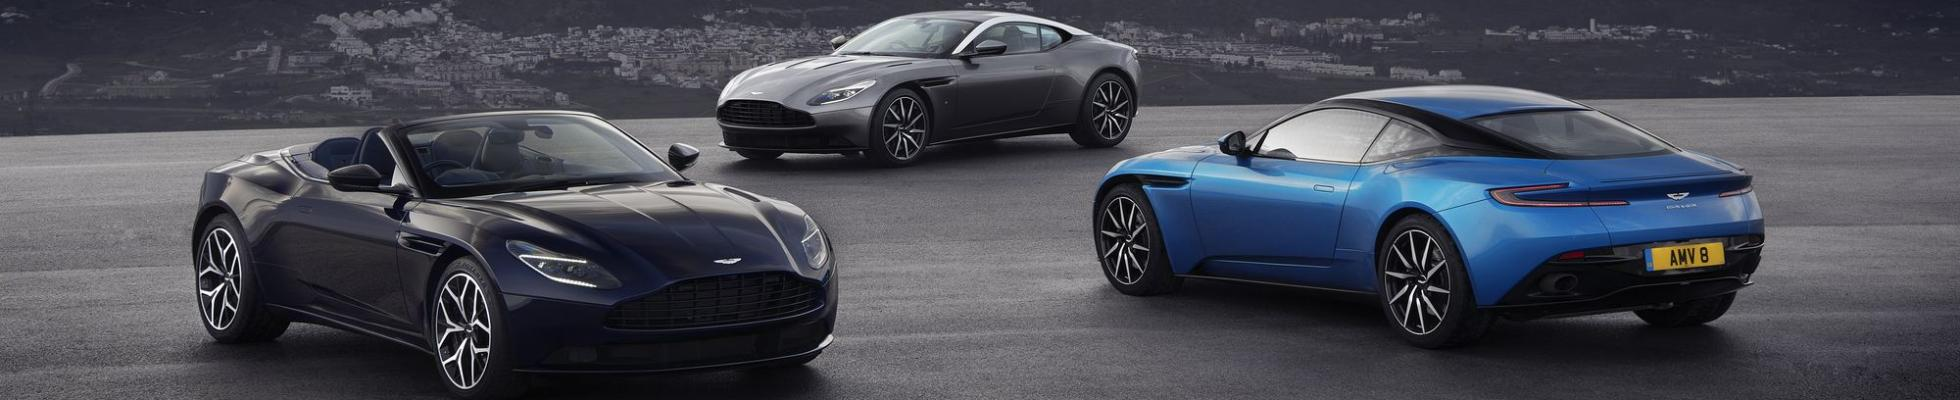 Working At Aston Martin Lagonda Ltd Employee Reviews About Pay Benefits Indeed Com